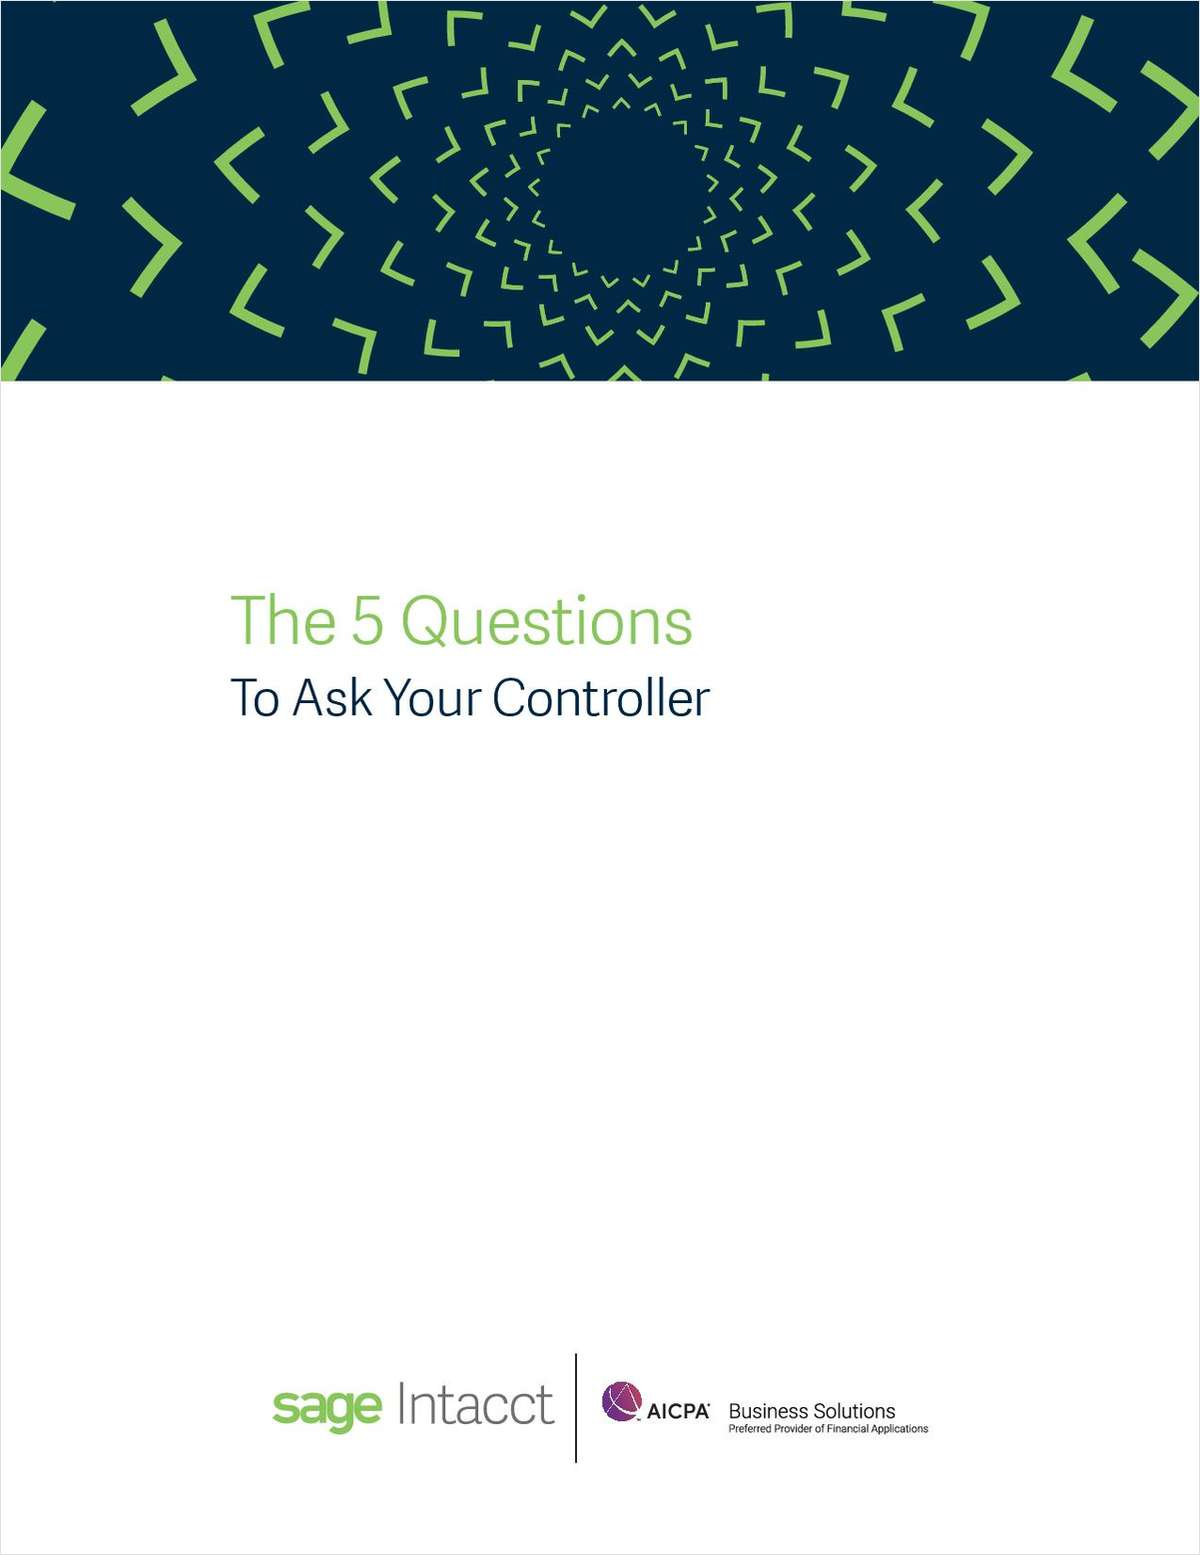 The 5 Questions to Ask Your Controller